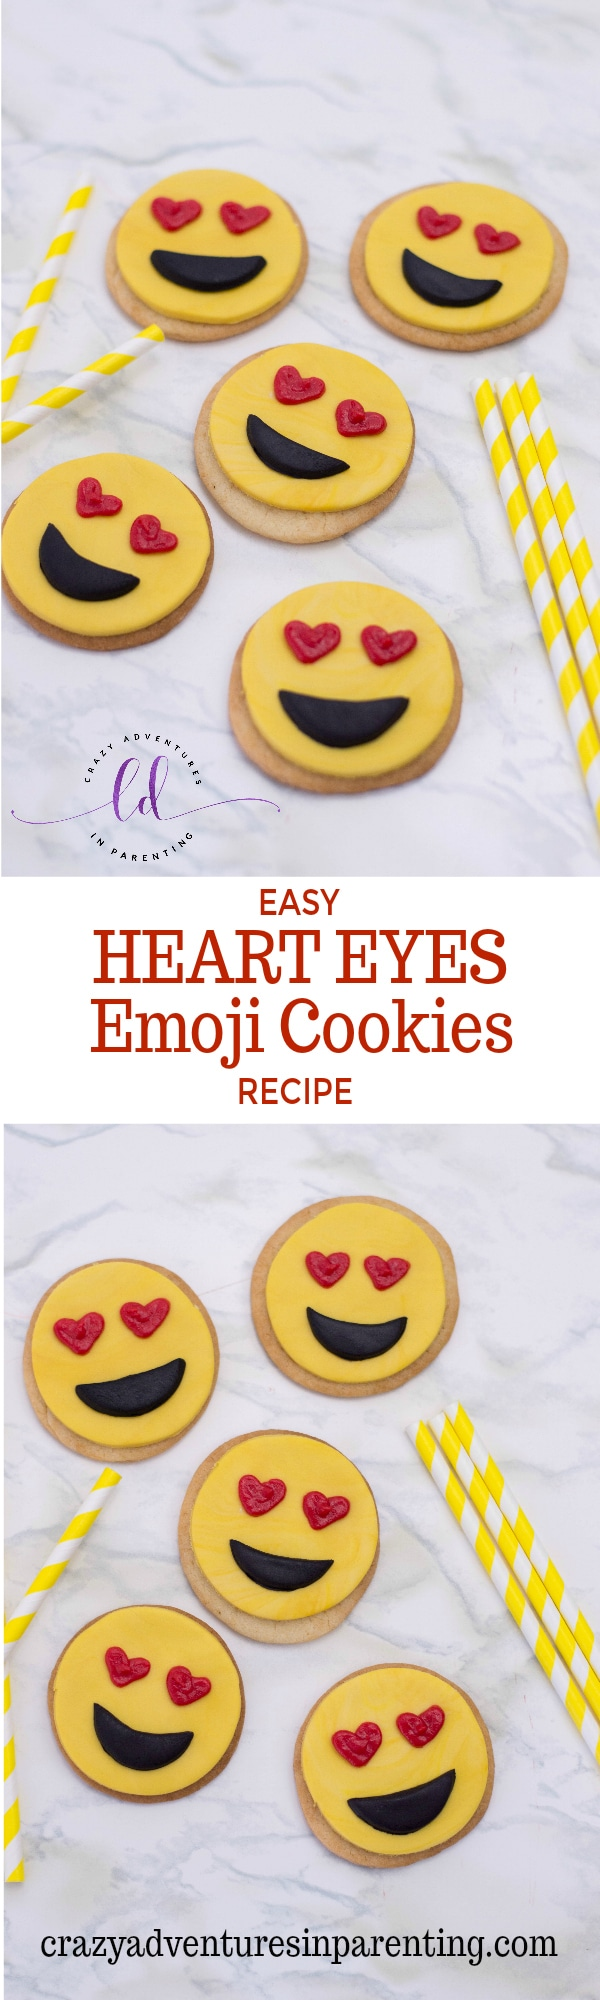 Easy Heart Eyes Emoji Cookies Recipe